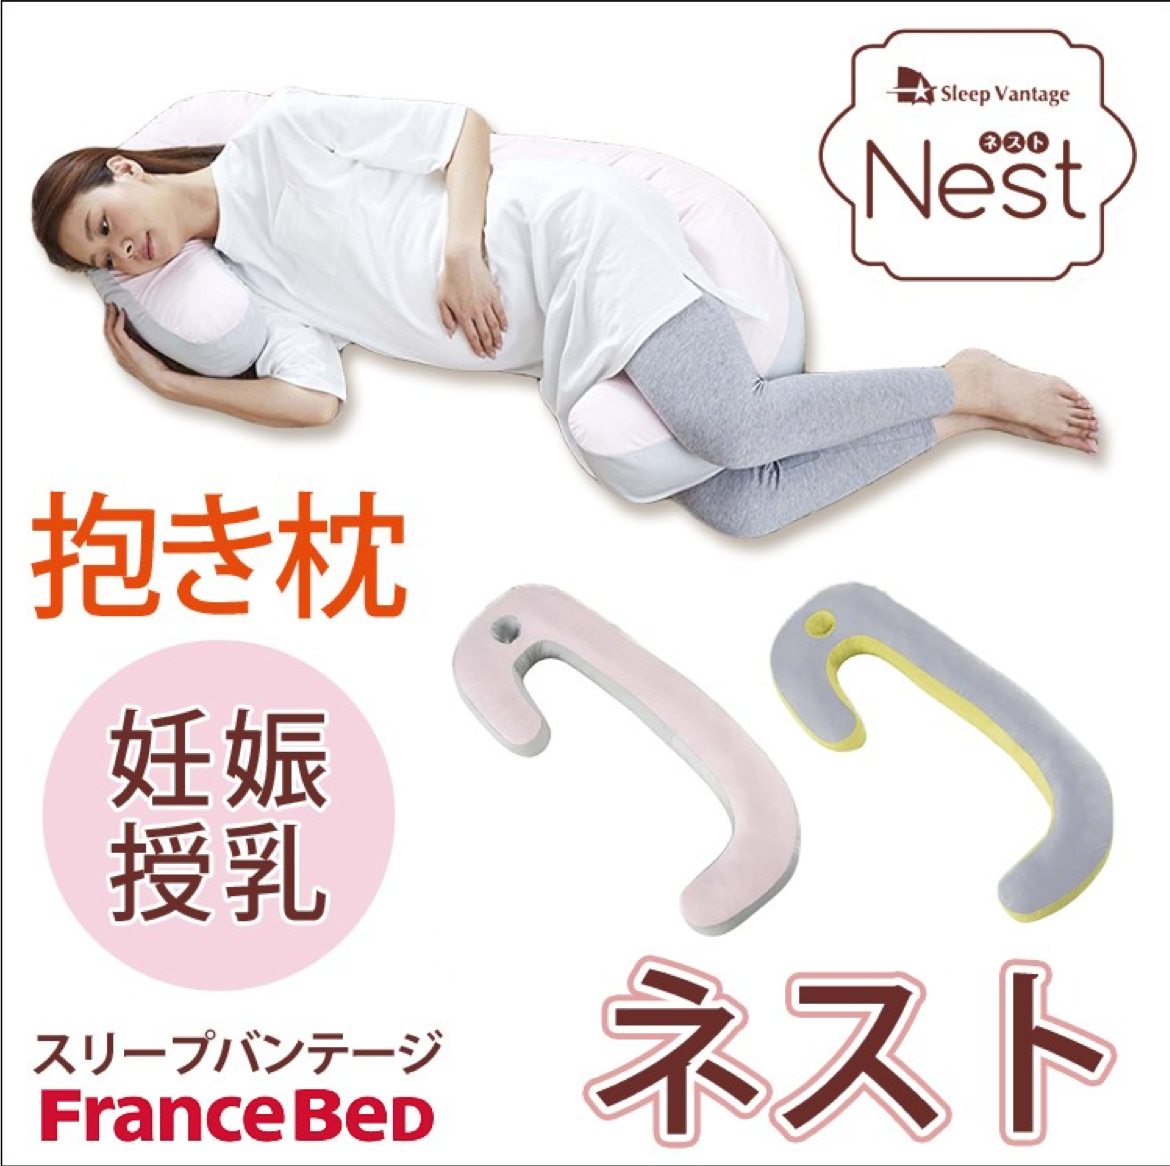 Sleep Vantage Nest